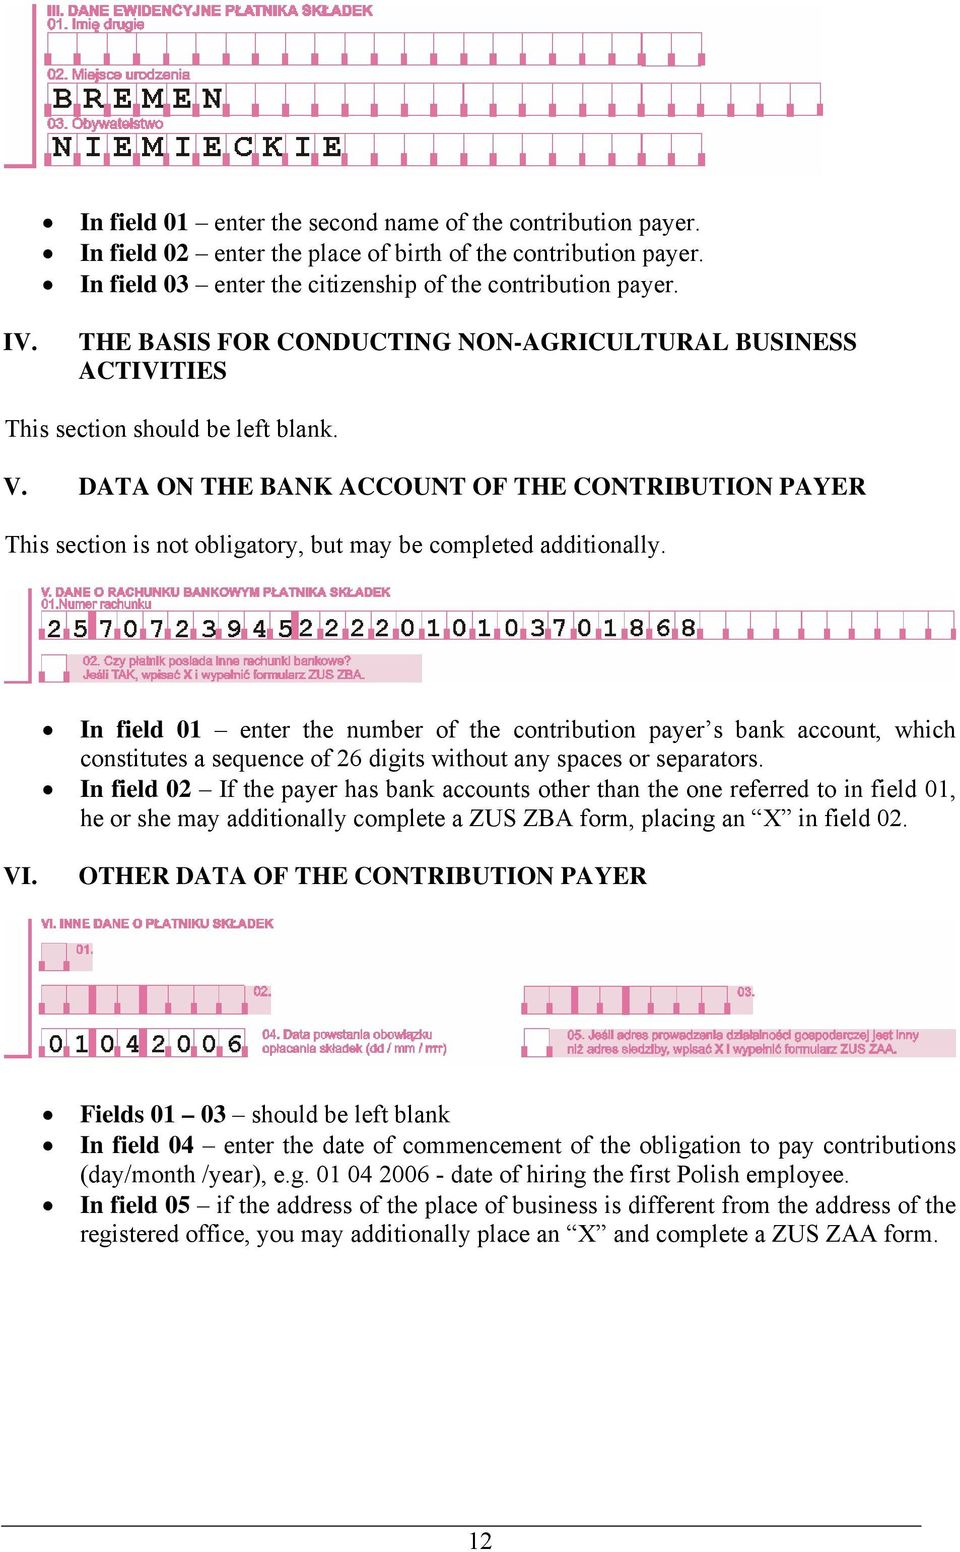 DATA ON THE BANK ACCOUNT OF THE CONTRIBUTION PAYER This section is not obligatory, but may be completed additionally.